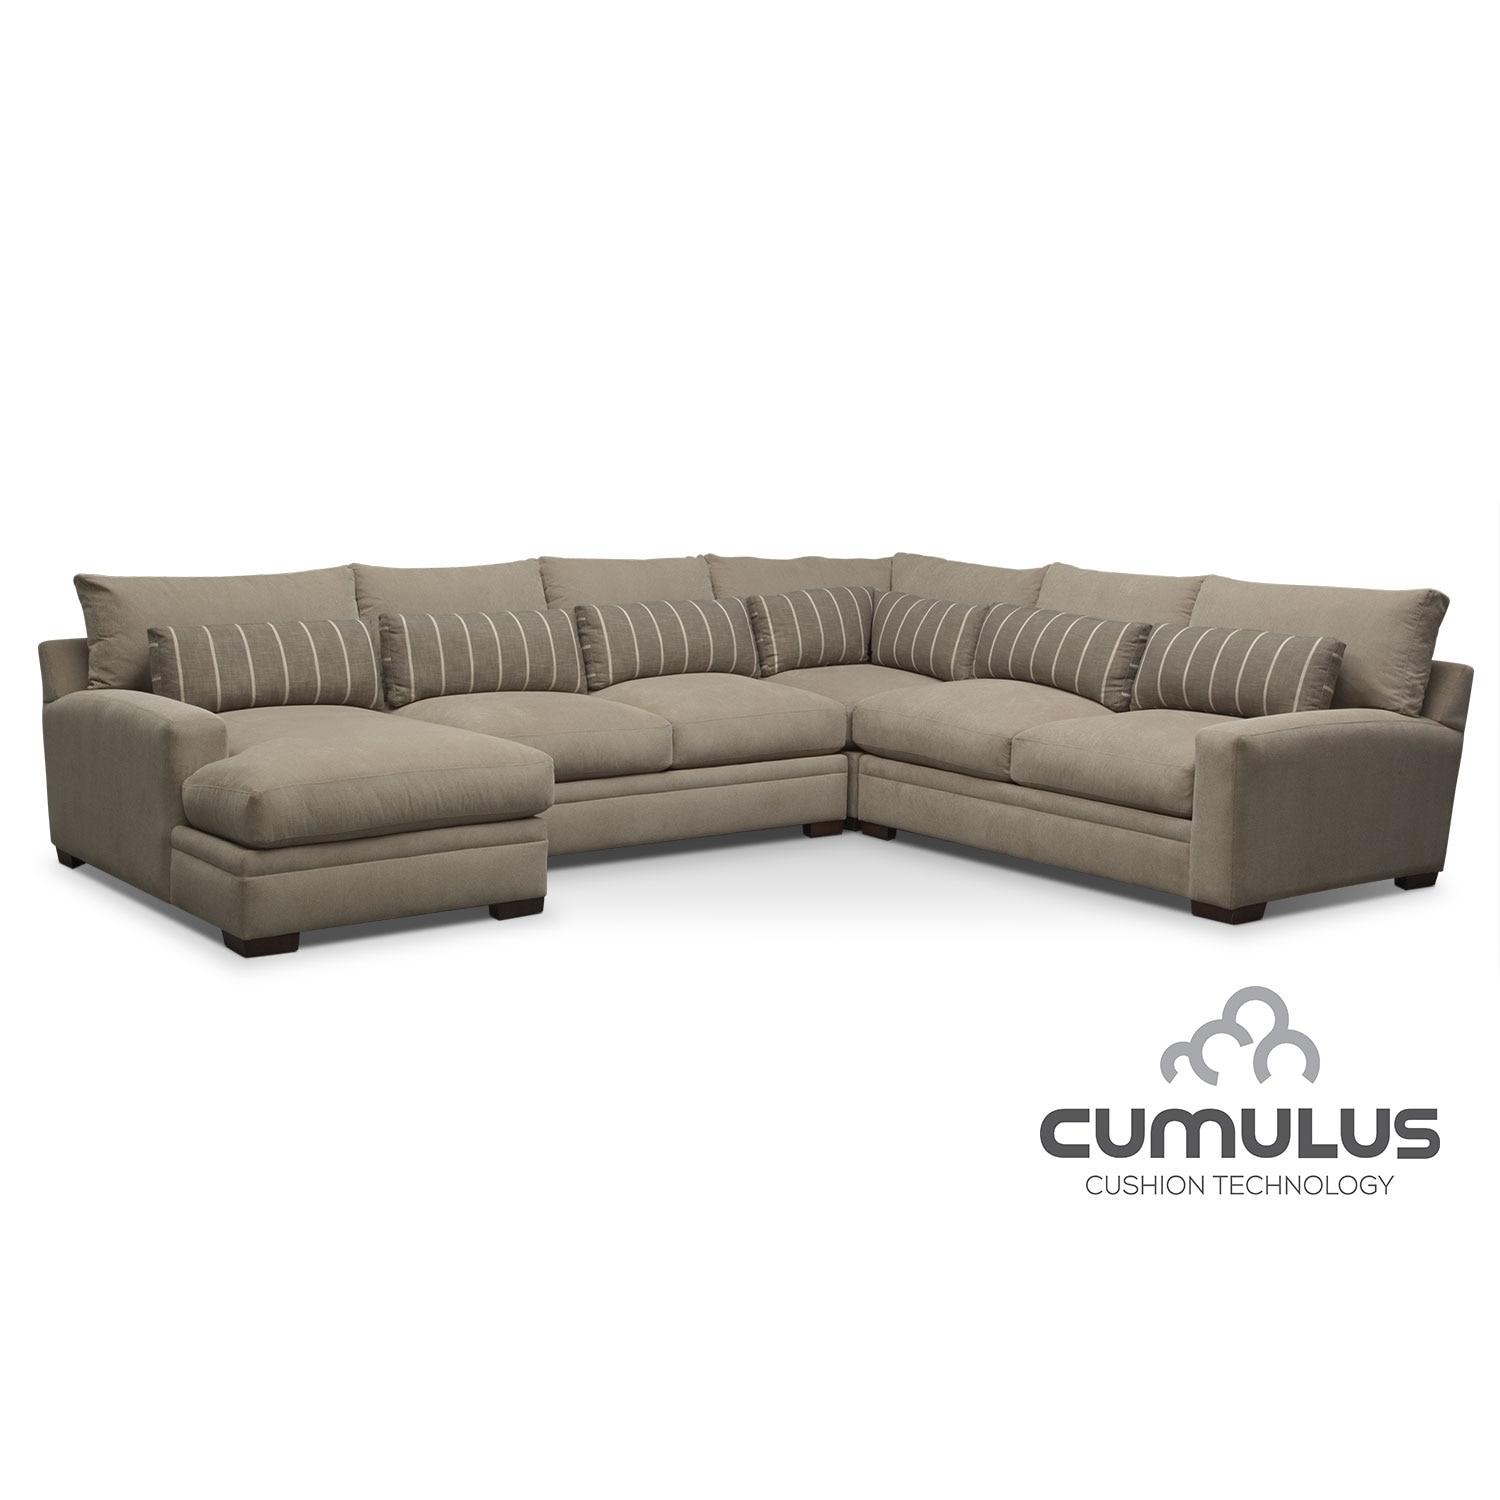 Living Room Furniture - Ventura 4-Piece Left-Facing Sectional - Buff